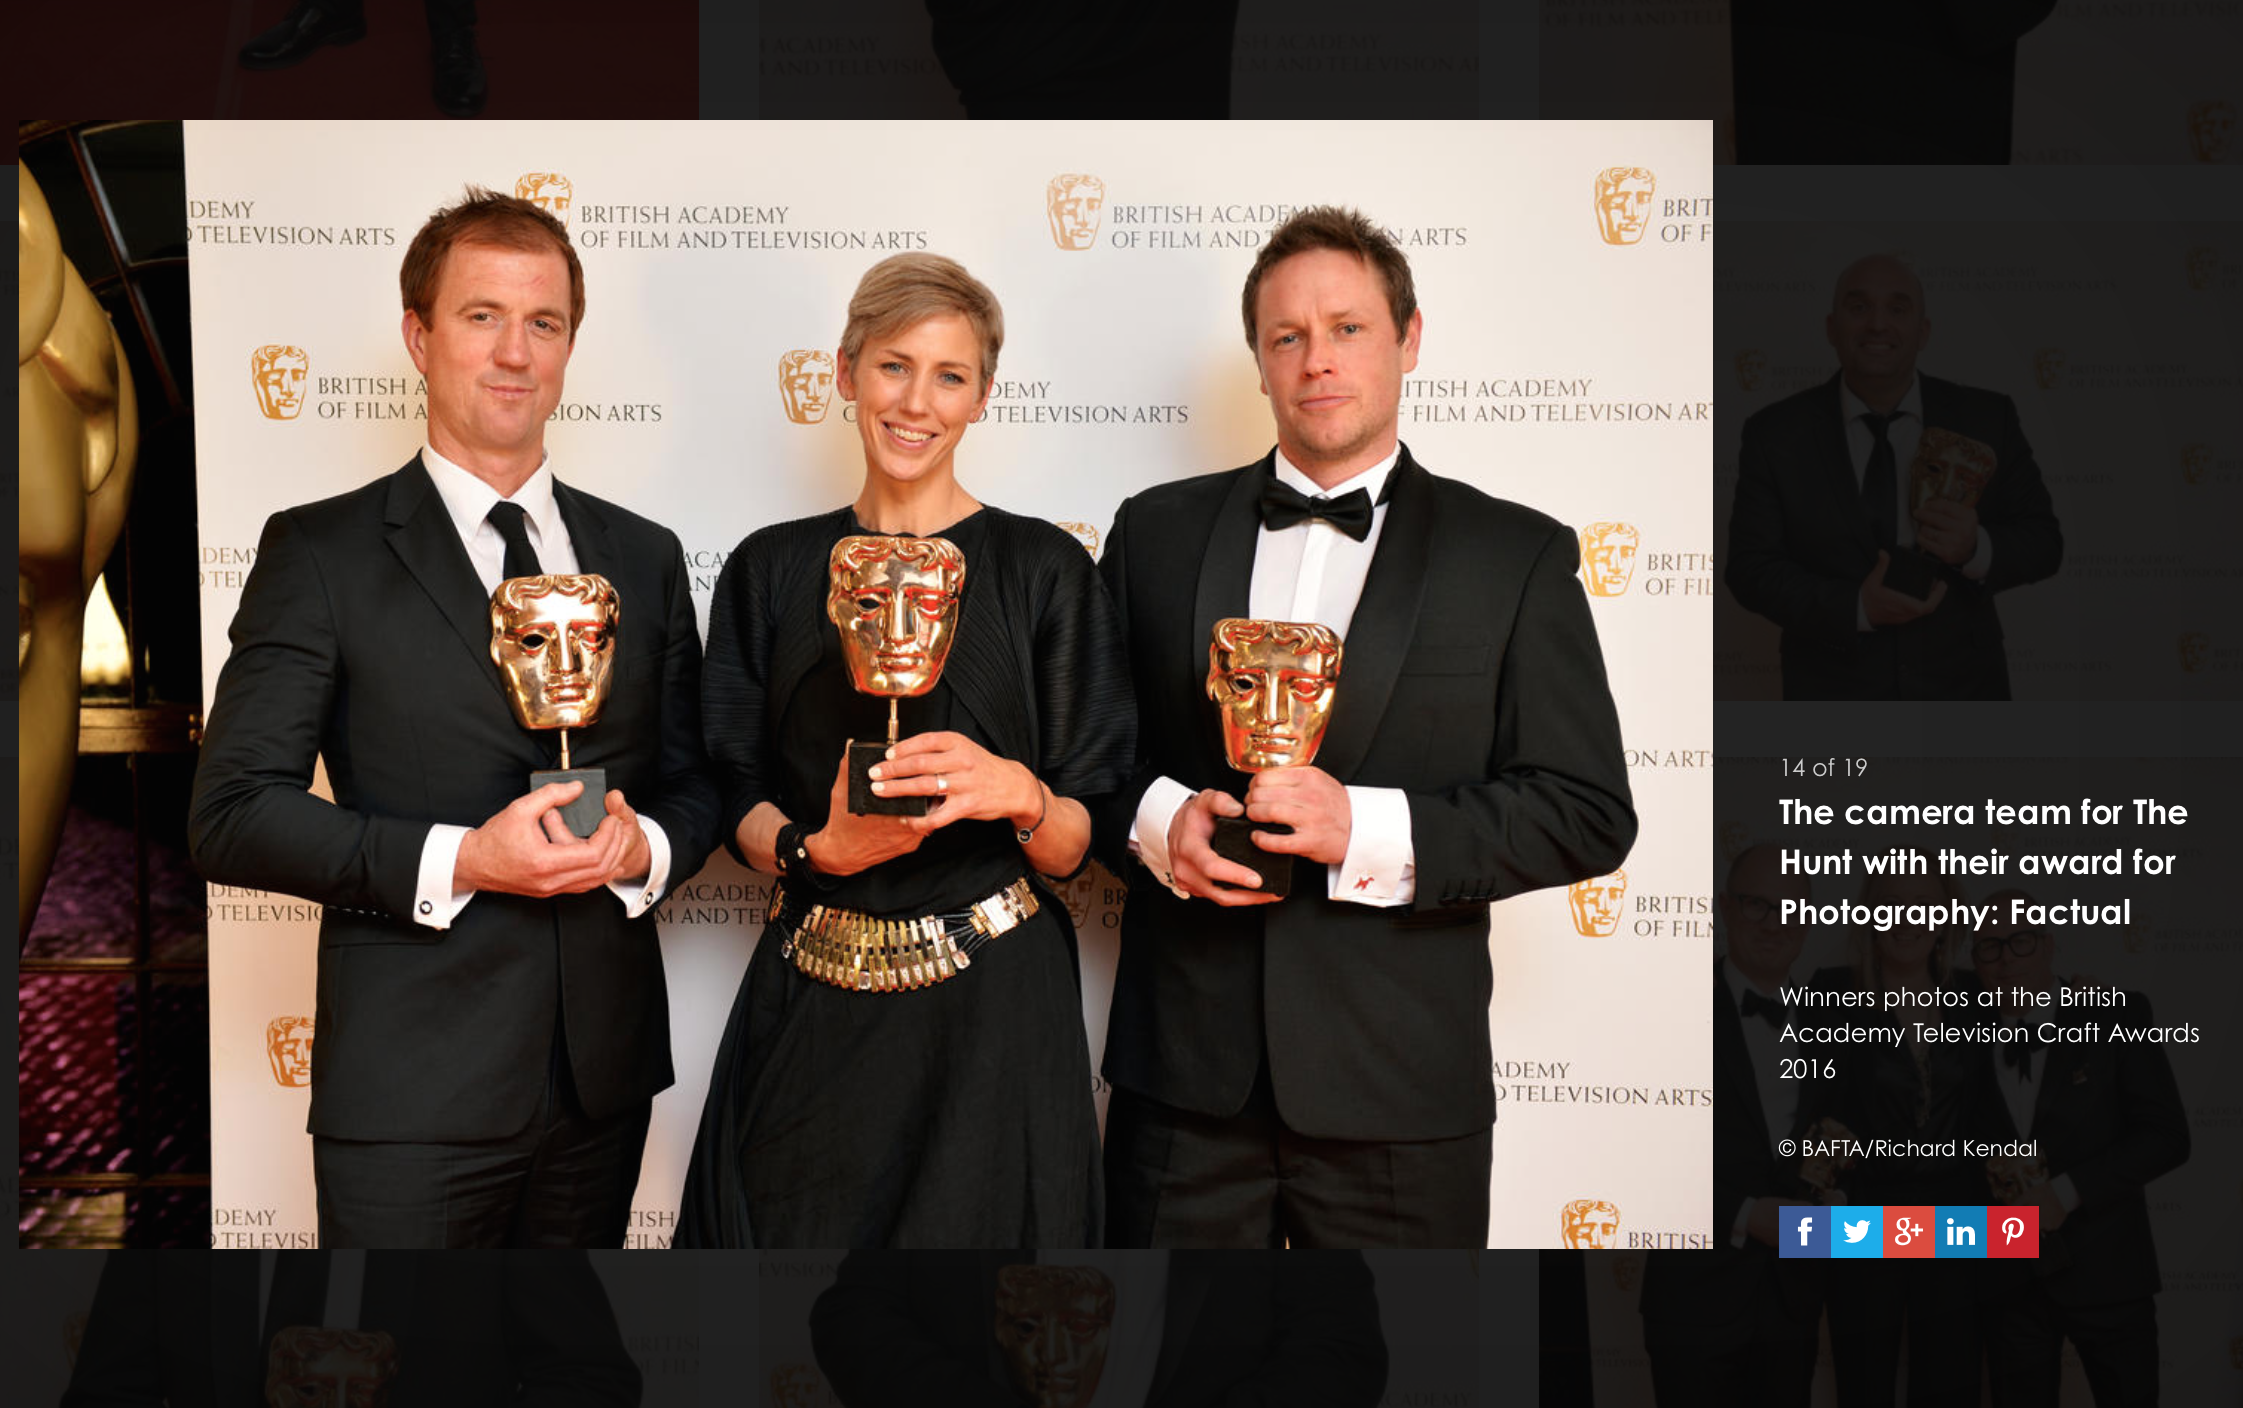 BAFTA 2016 Televison Craft Photography - Factual